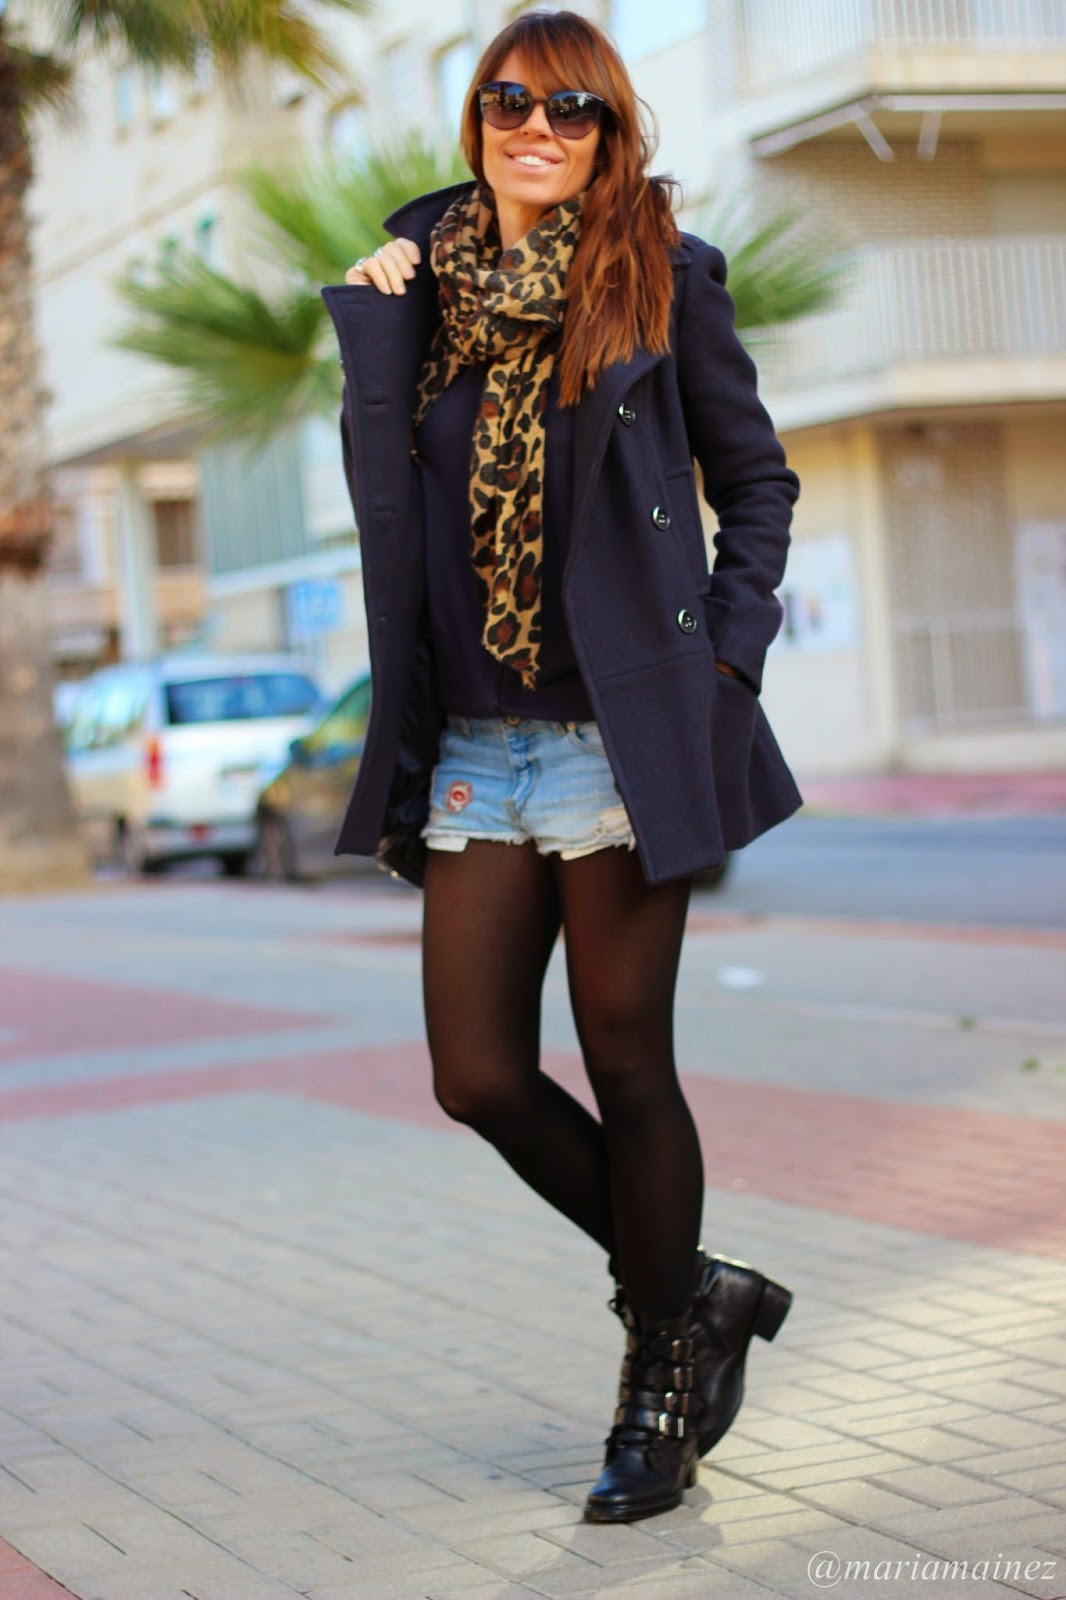 Outfit invierno - Efforless- Bikers Buffalo London- Chanel sunnies- Abrigo Paño azul